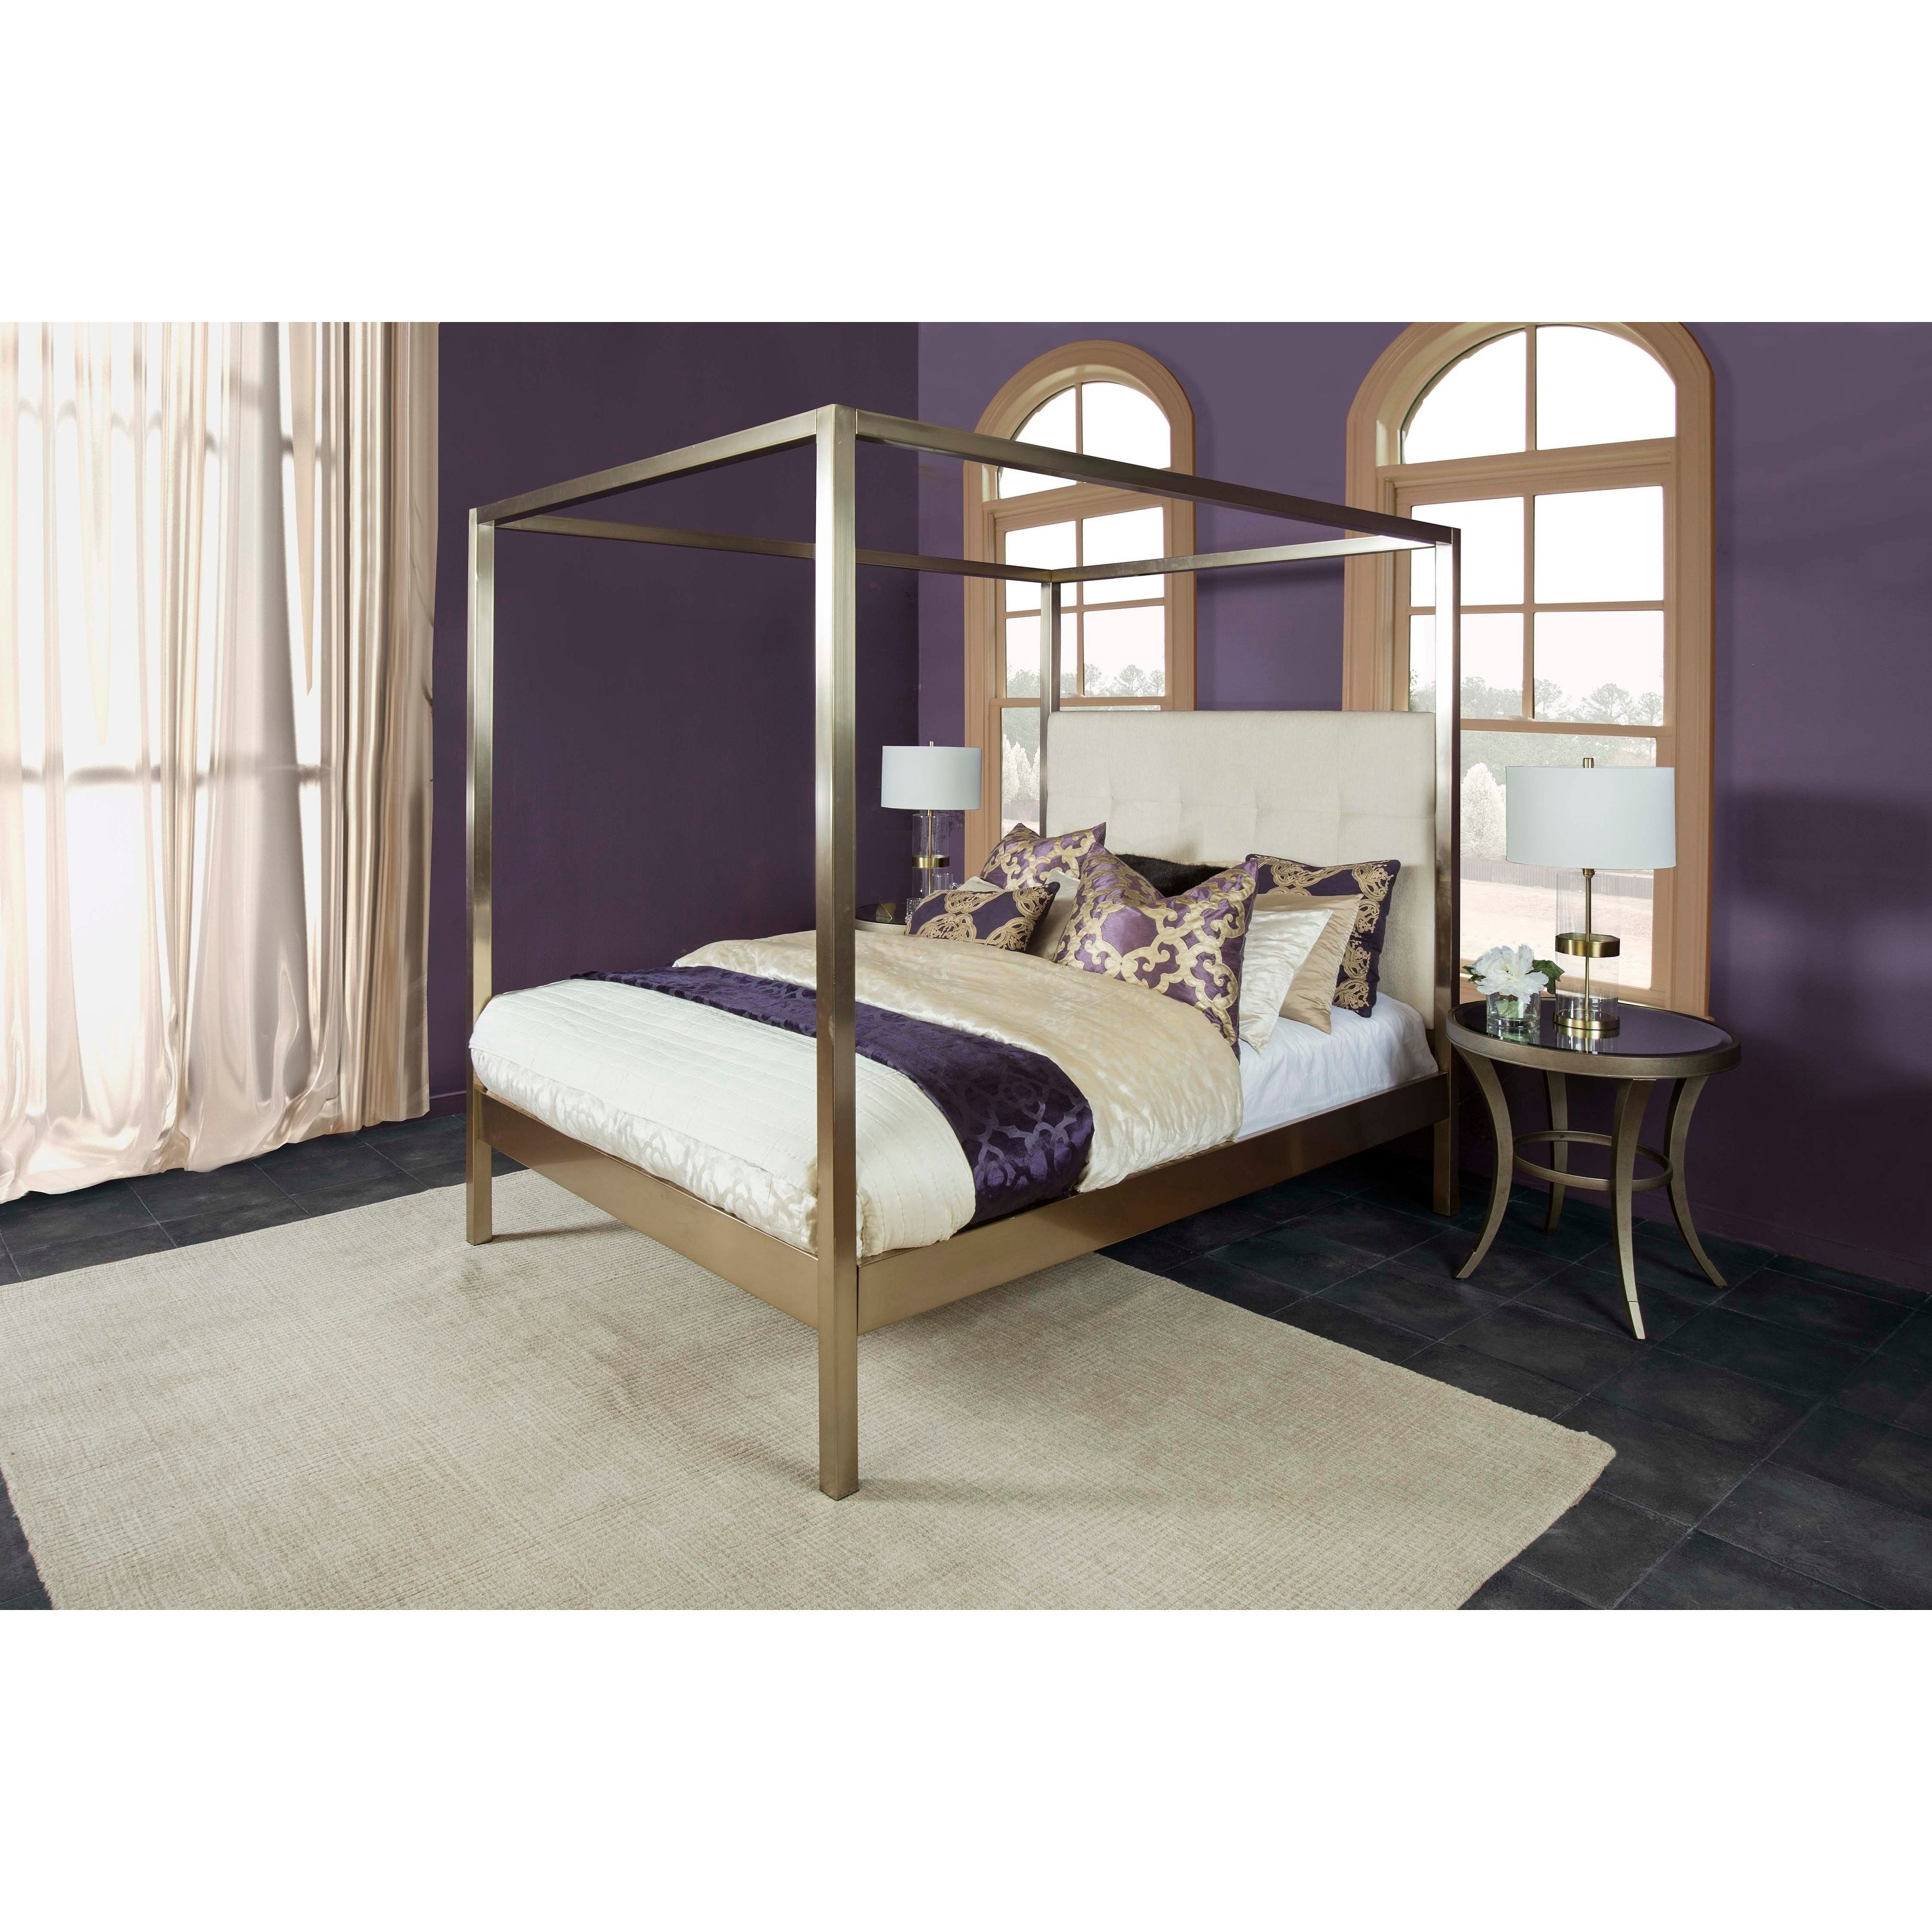 Avalon King Bed Set Champagne Brass, Cultured Pearl